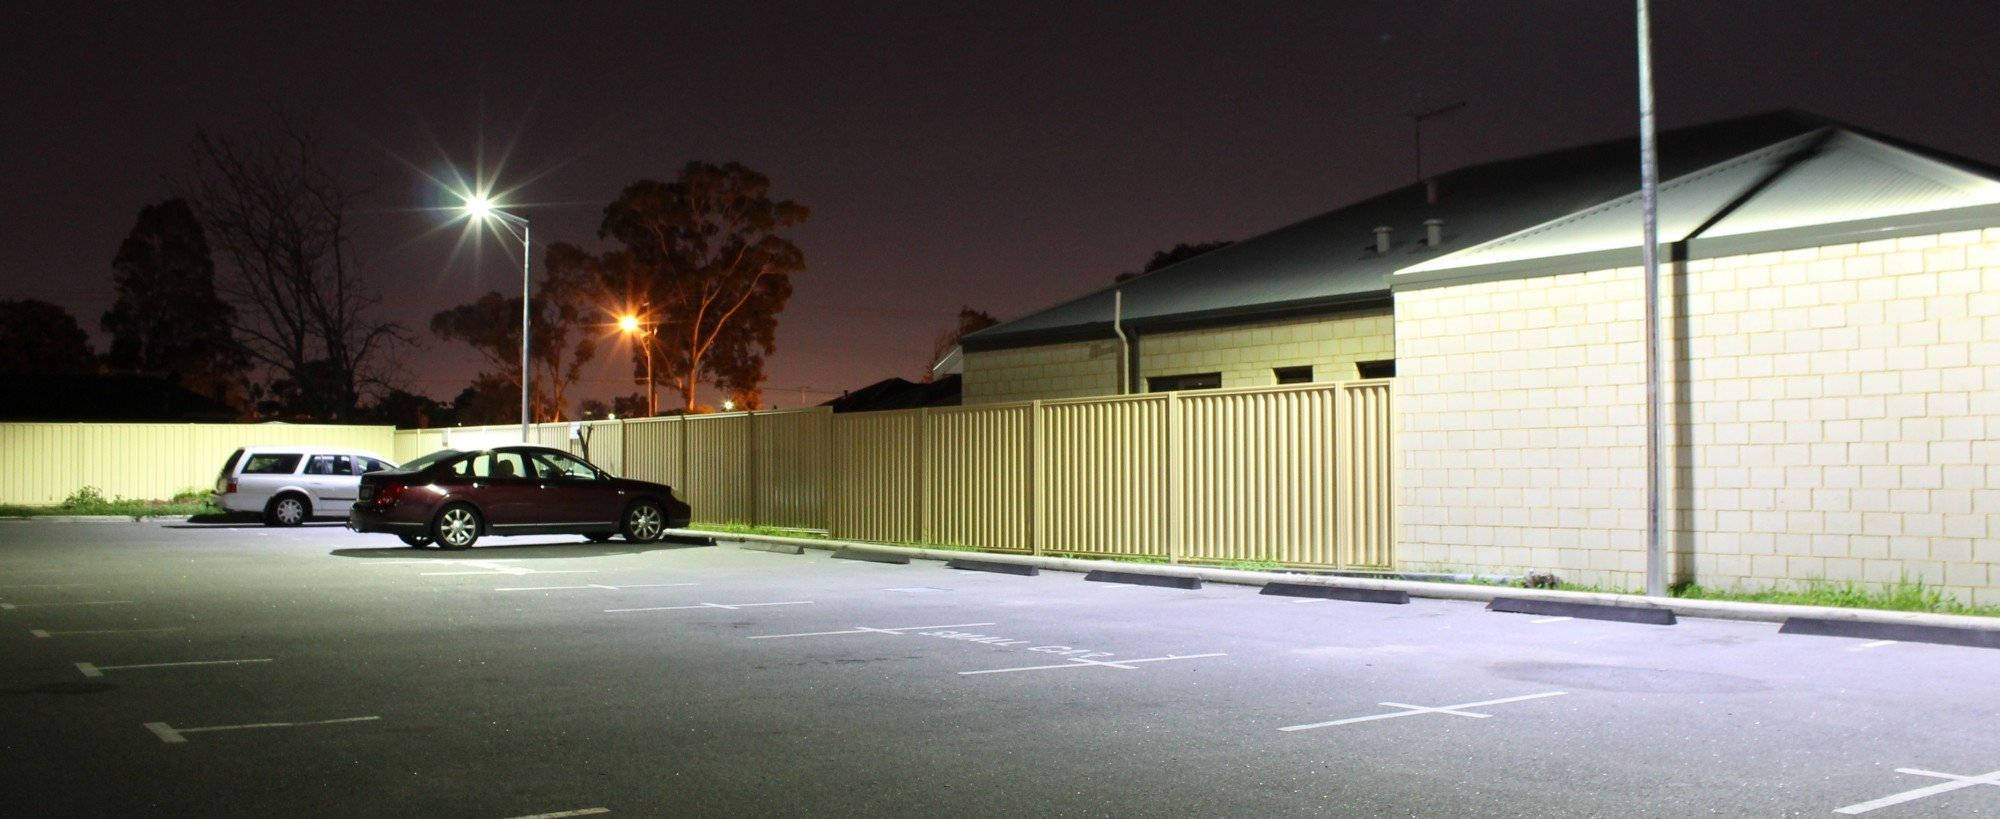 Islamic-School-Thornlie_night1-2000x8191